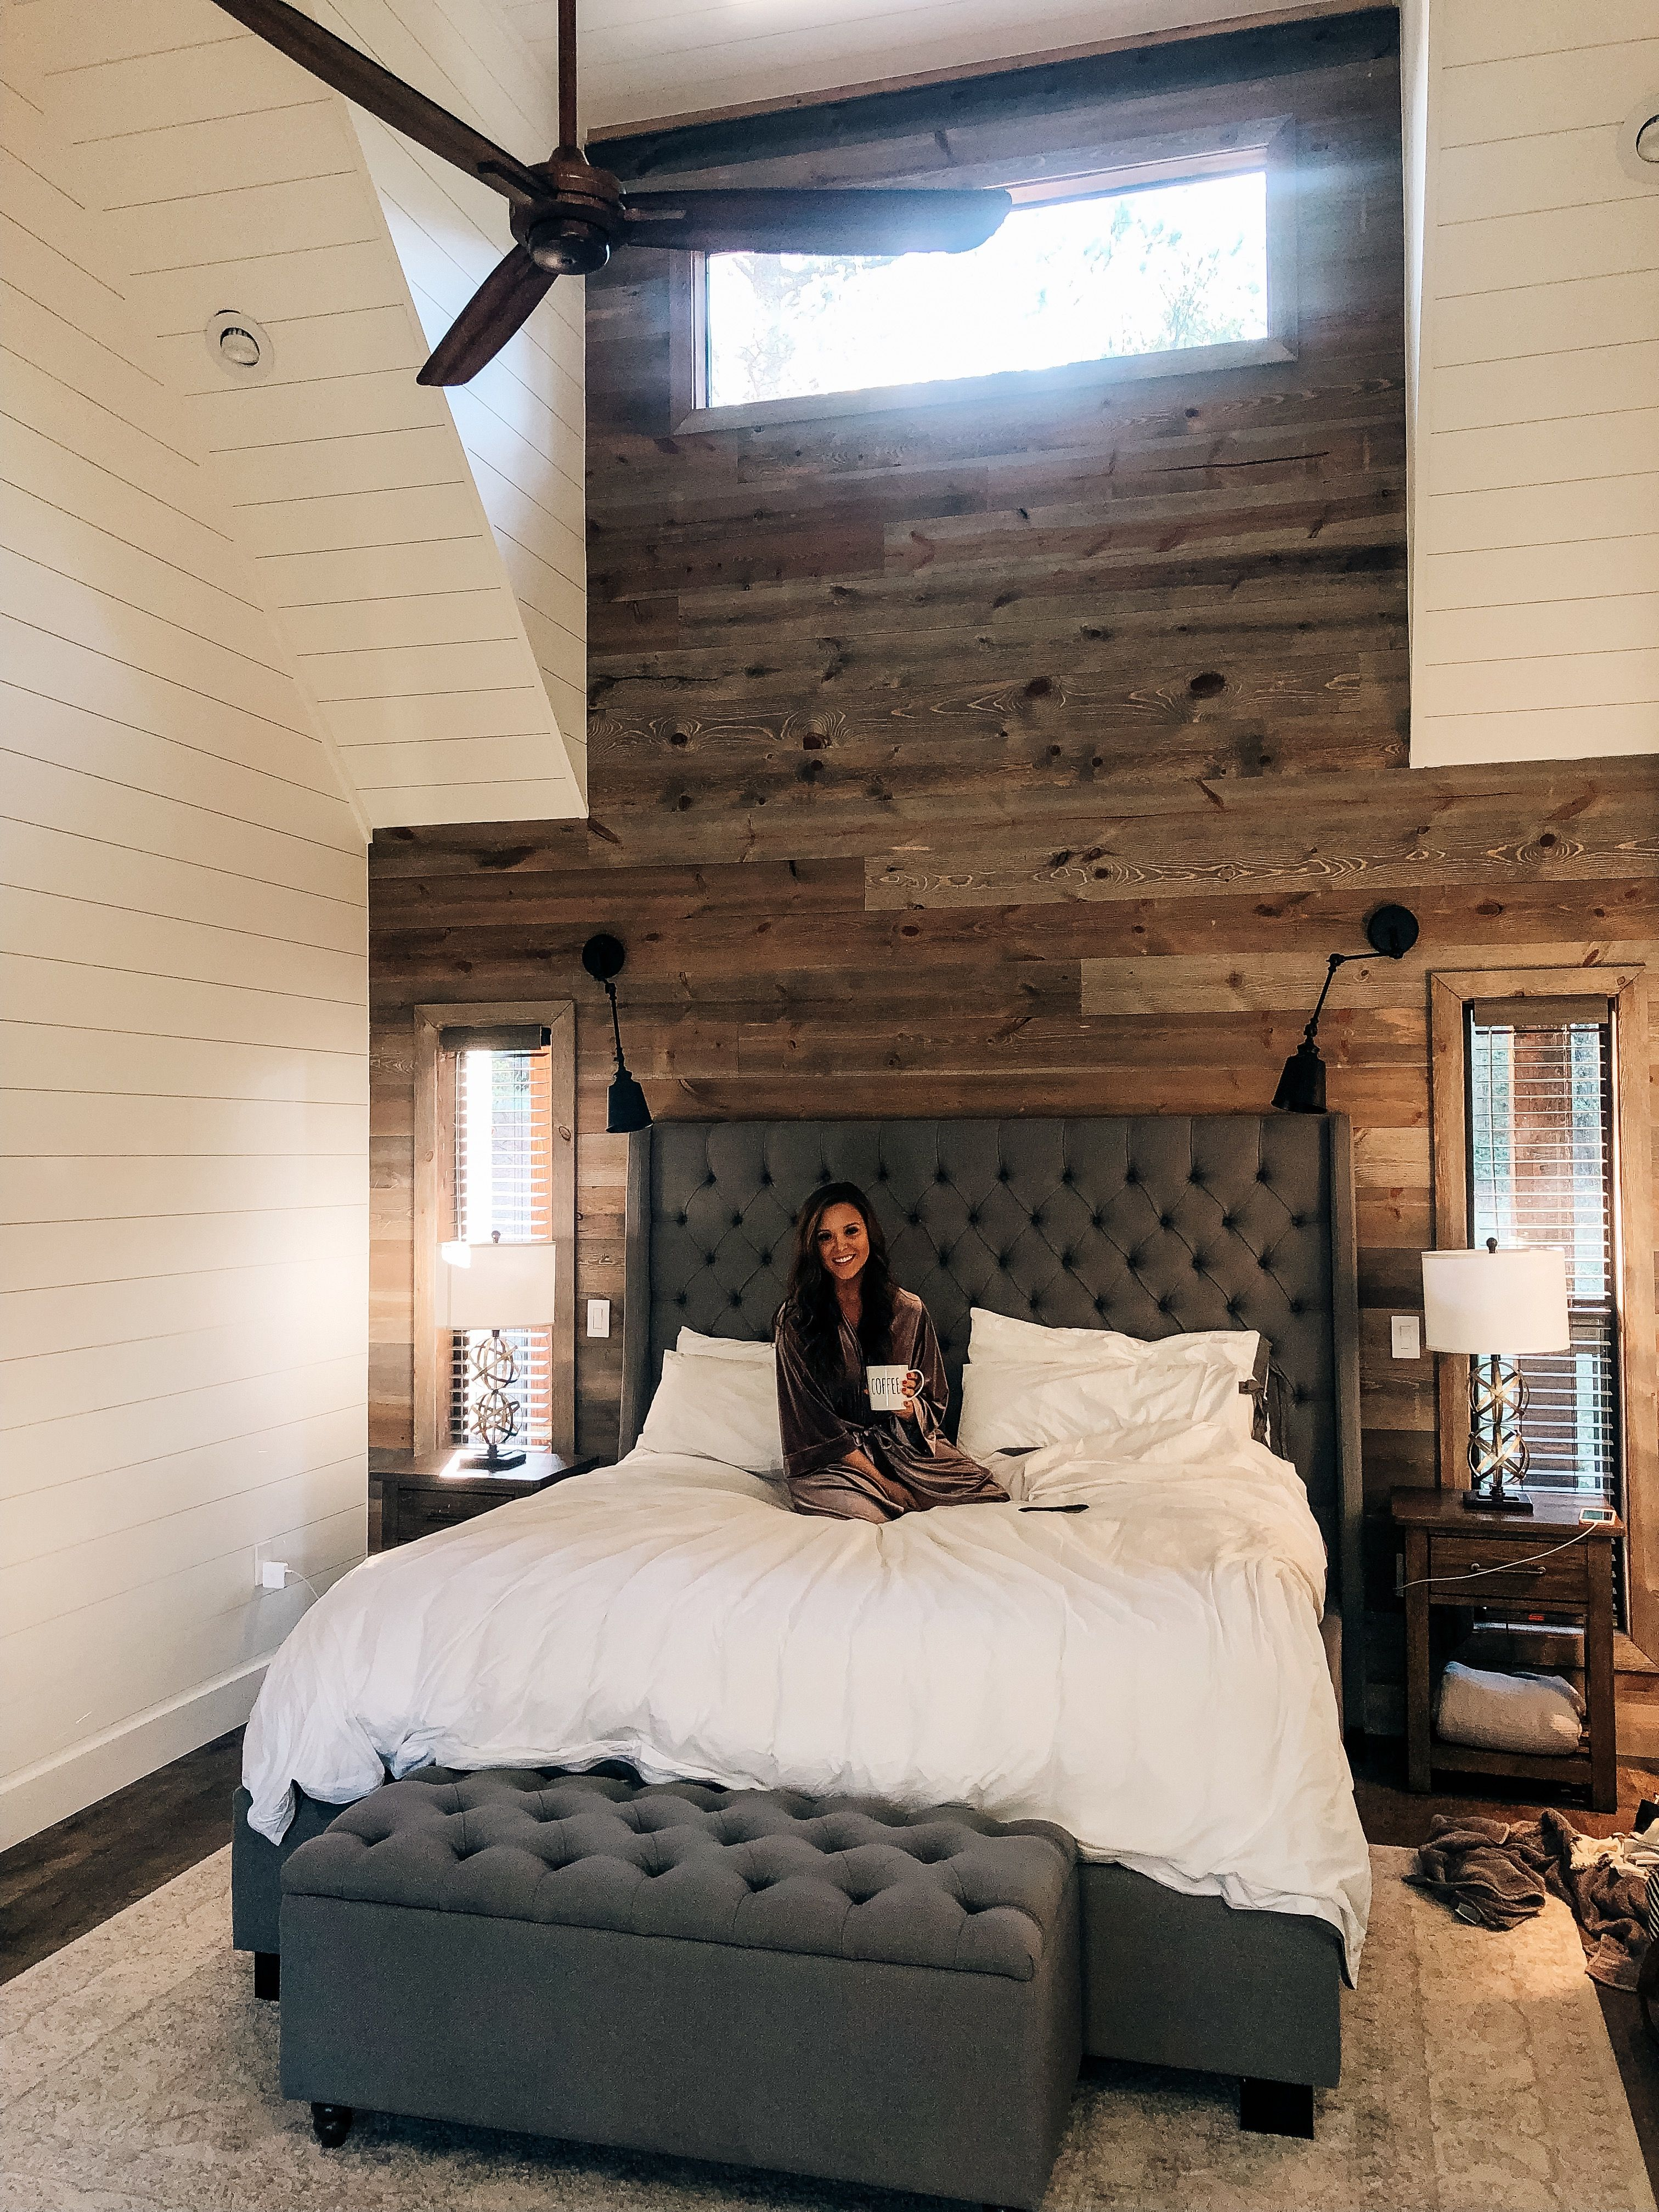 The Most Romantic Cabin Getaway In Oklahoma Romantic Cabin Getaway Cabins Romantic Cabin Getaway